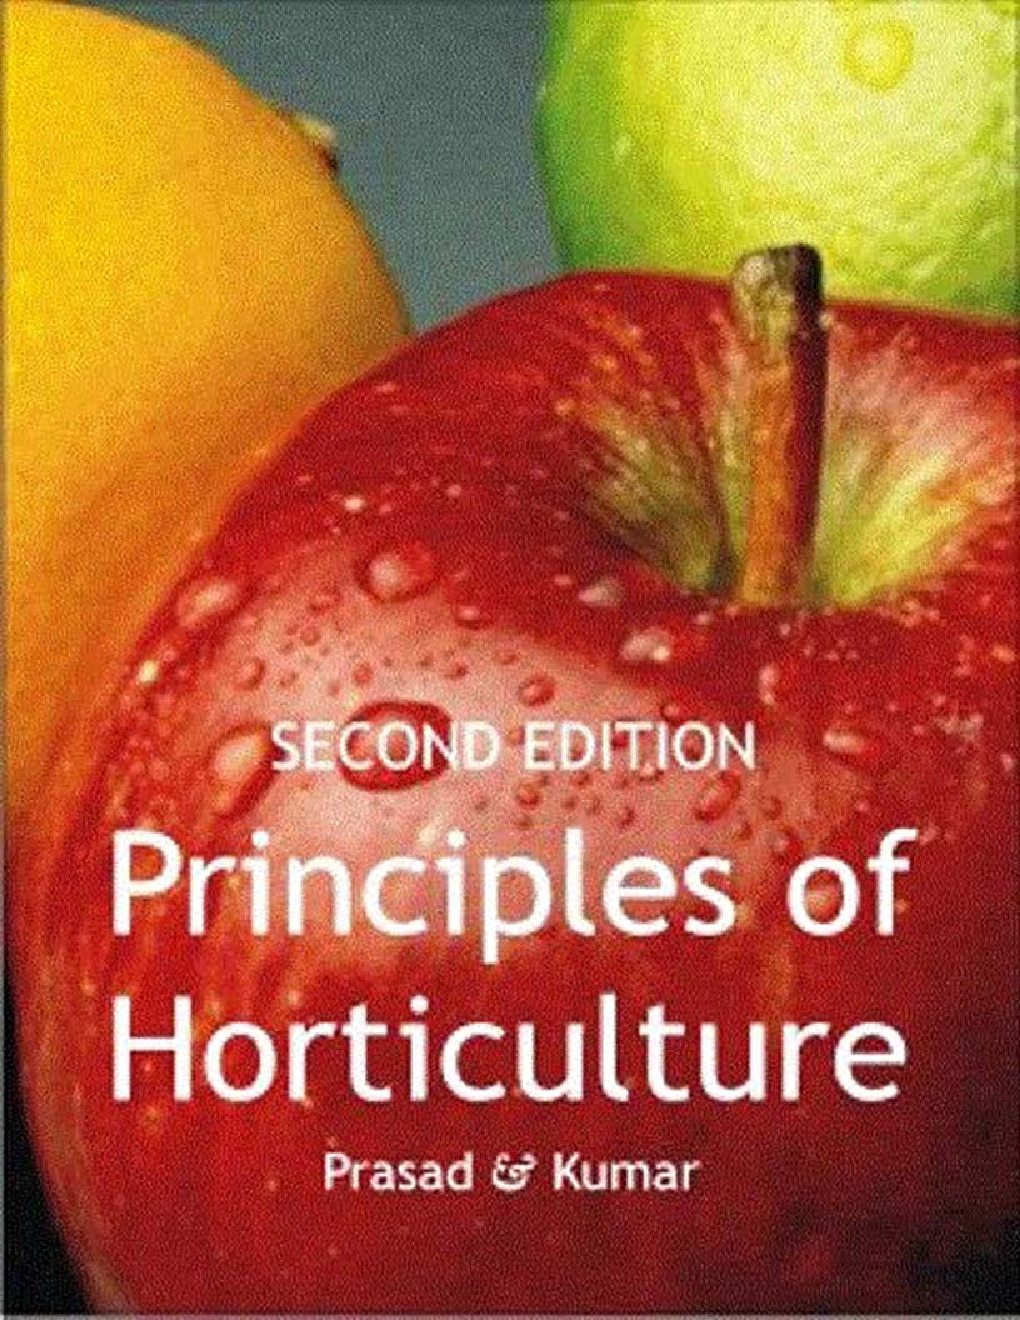 introduction to horticulture by kumar pdf